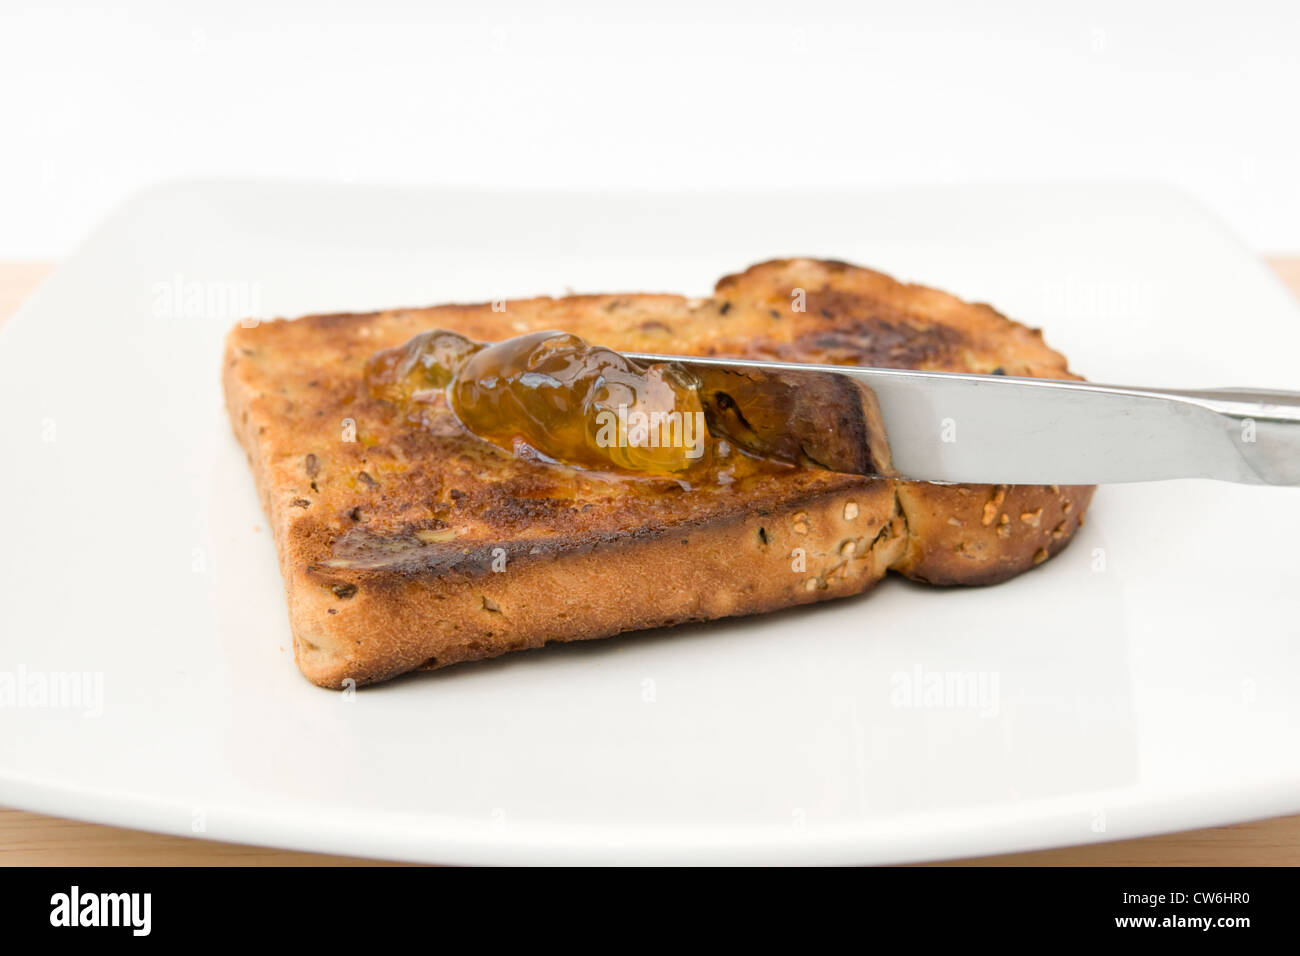 Spreading orange marmalade on slice of granary bread on white plate against white background - Stock Image